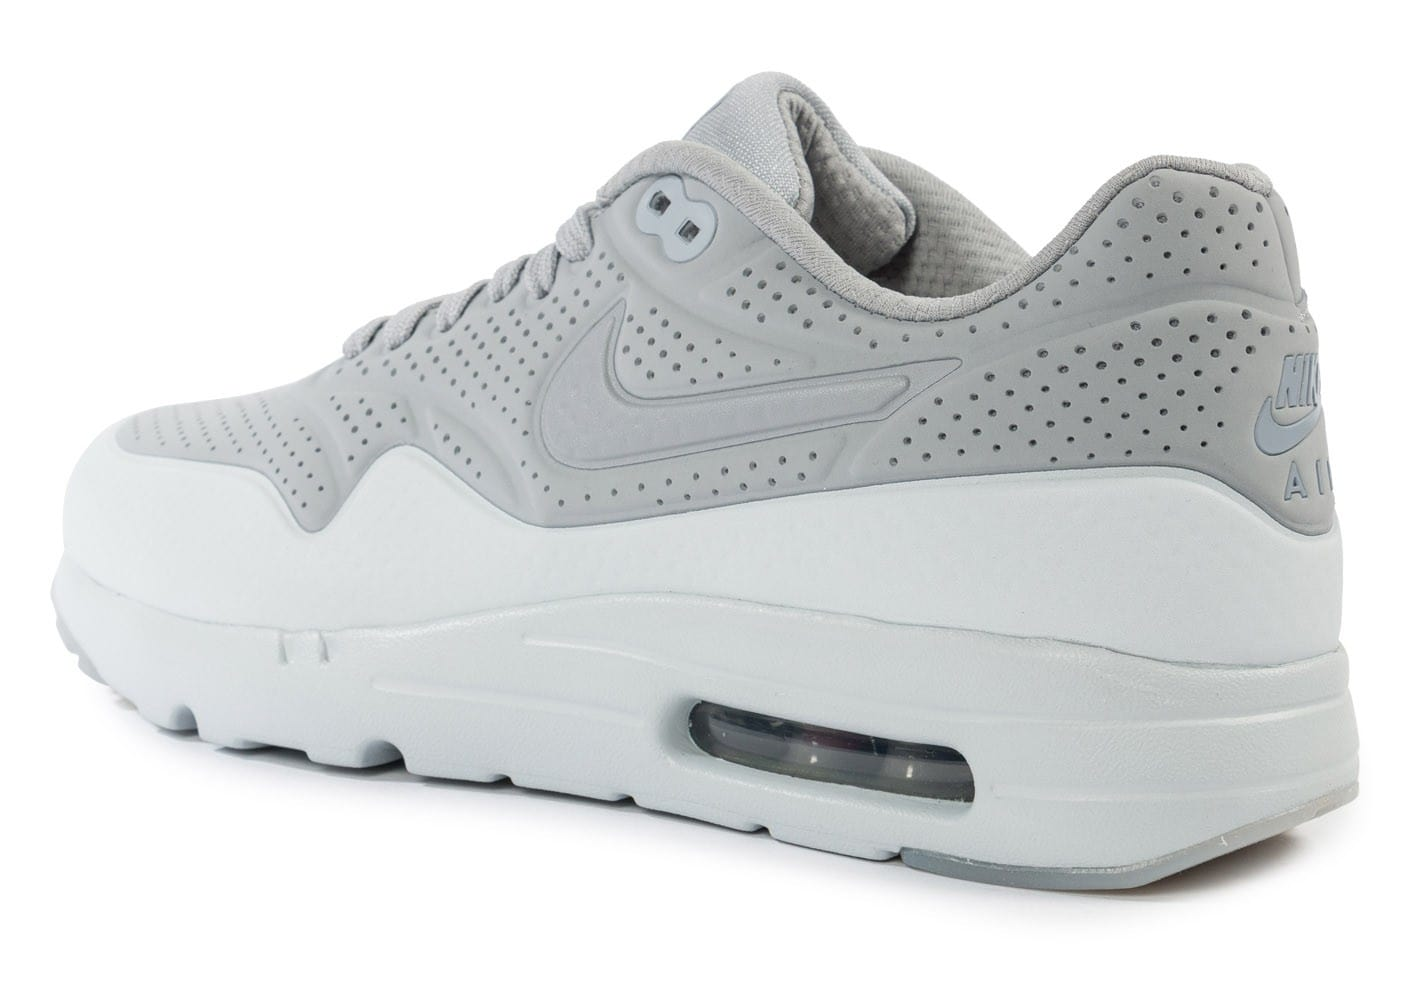 size 40 756f2 c8578 ... Chaussures Nike Air Max 1 Ultra Moire Wolf Grey vue arrière ...